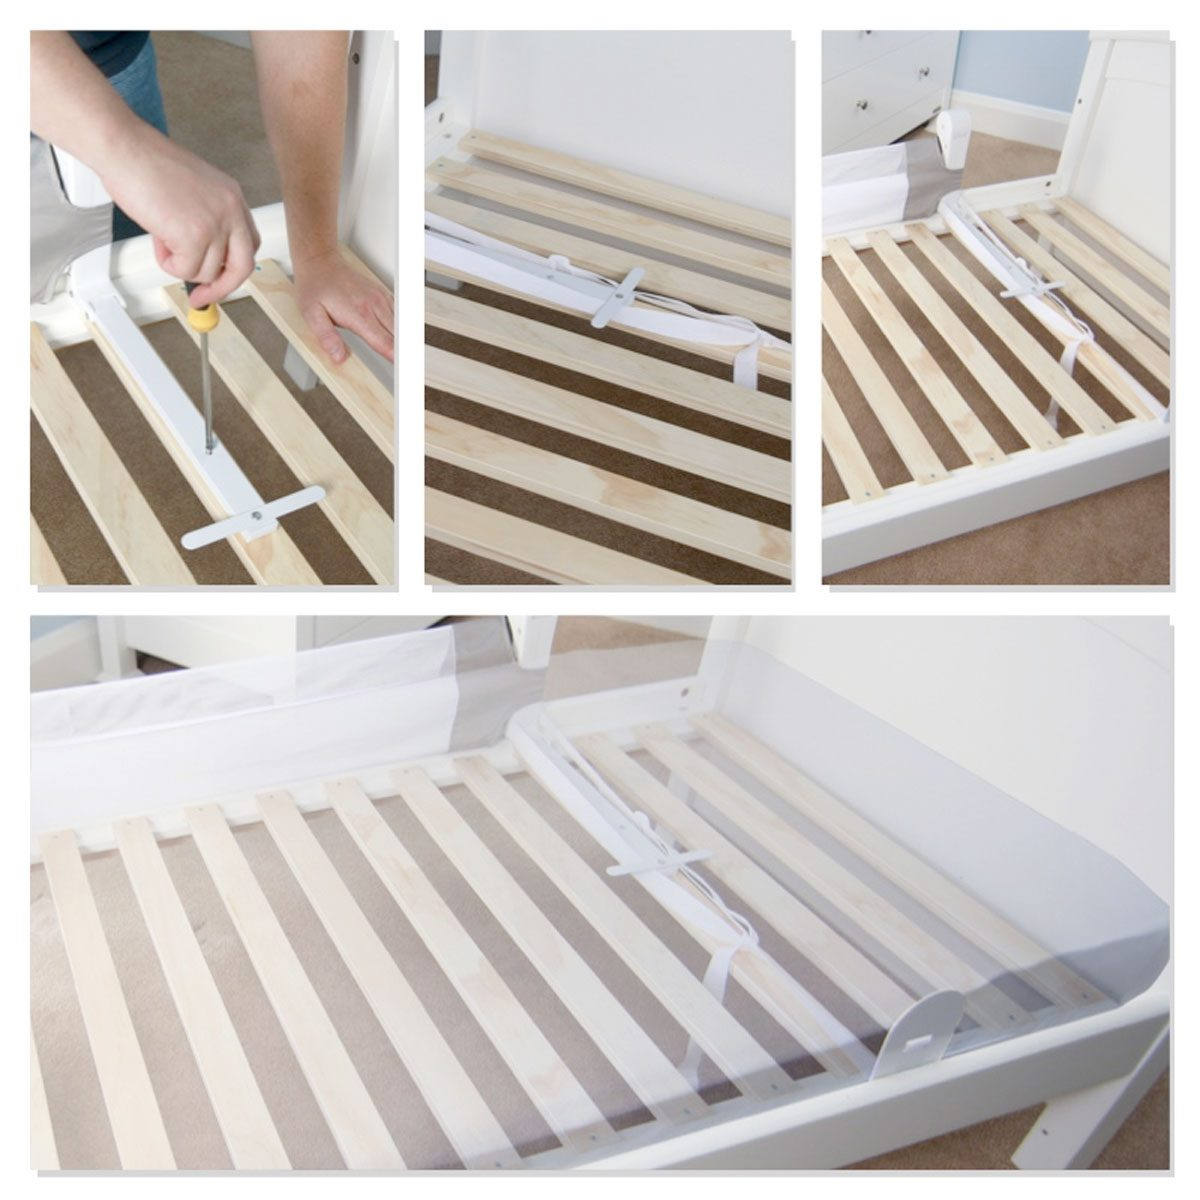 The Bed Guard is secured to the base of the bed to add extra security and strength